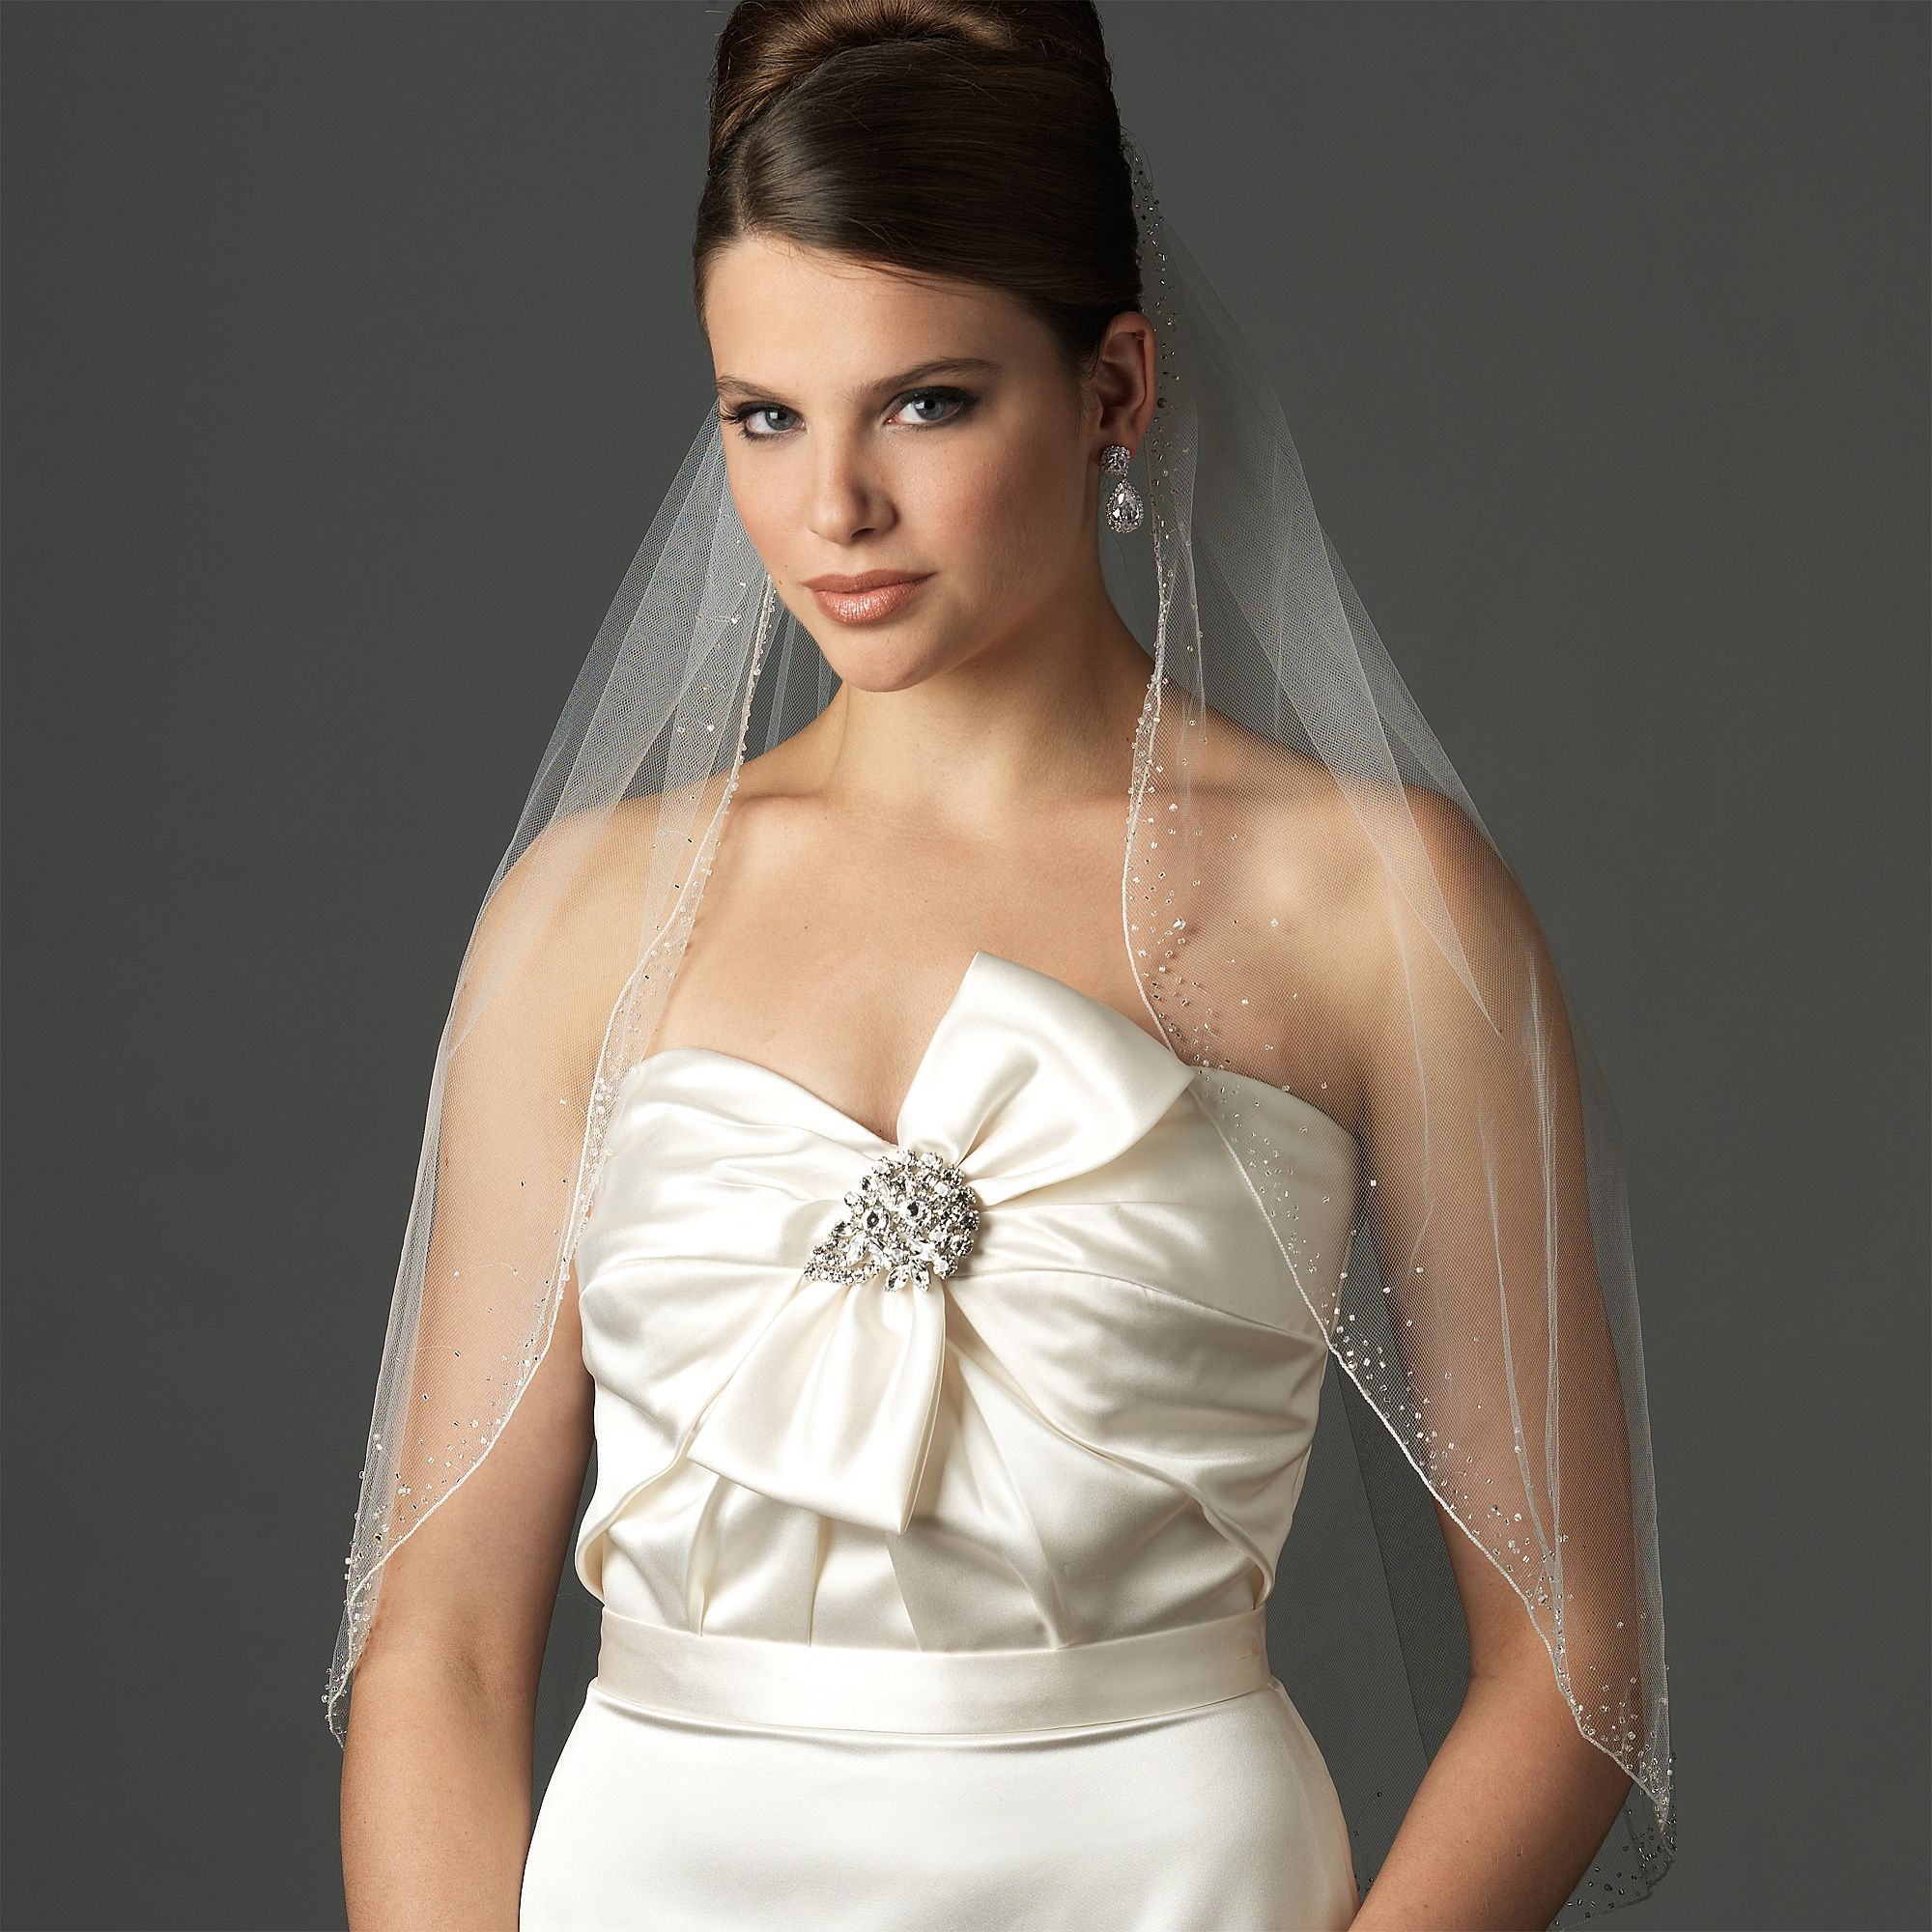 Types of Wedding Veils - Elbow Veils